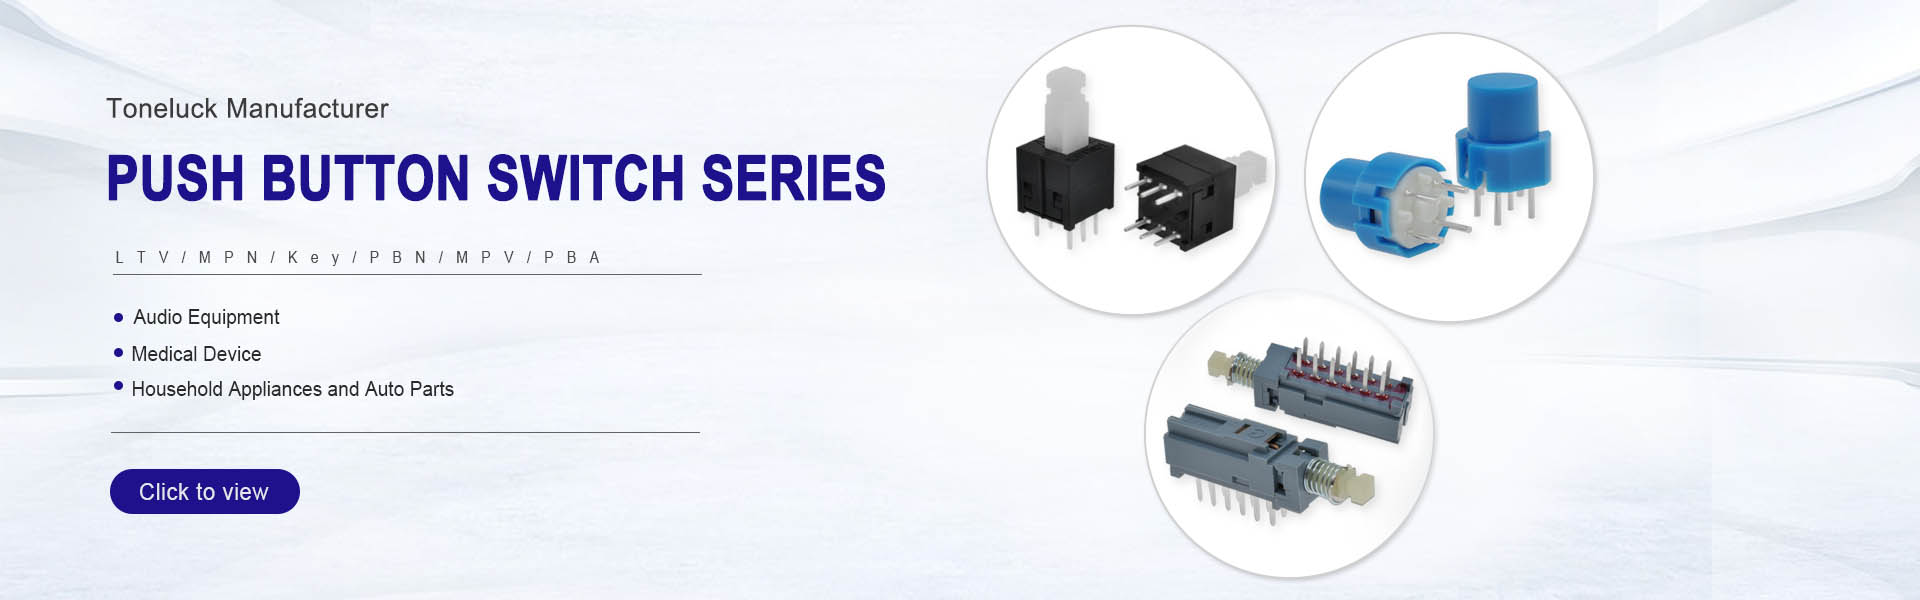 push button switch banner